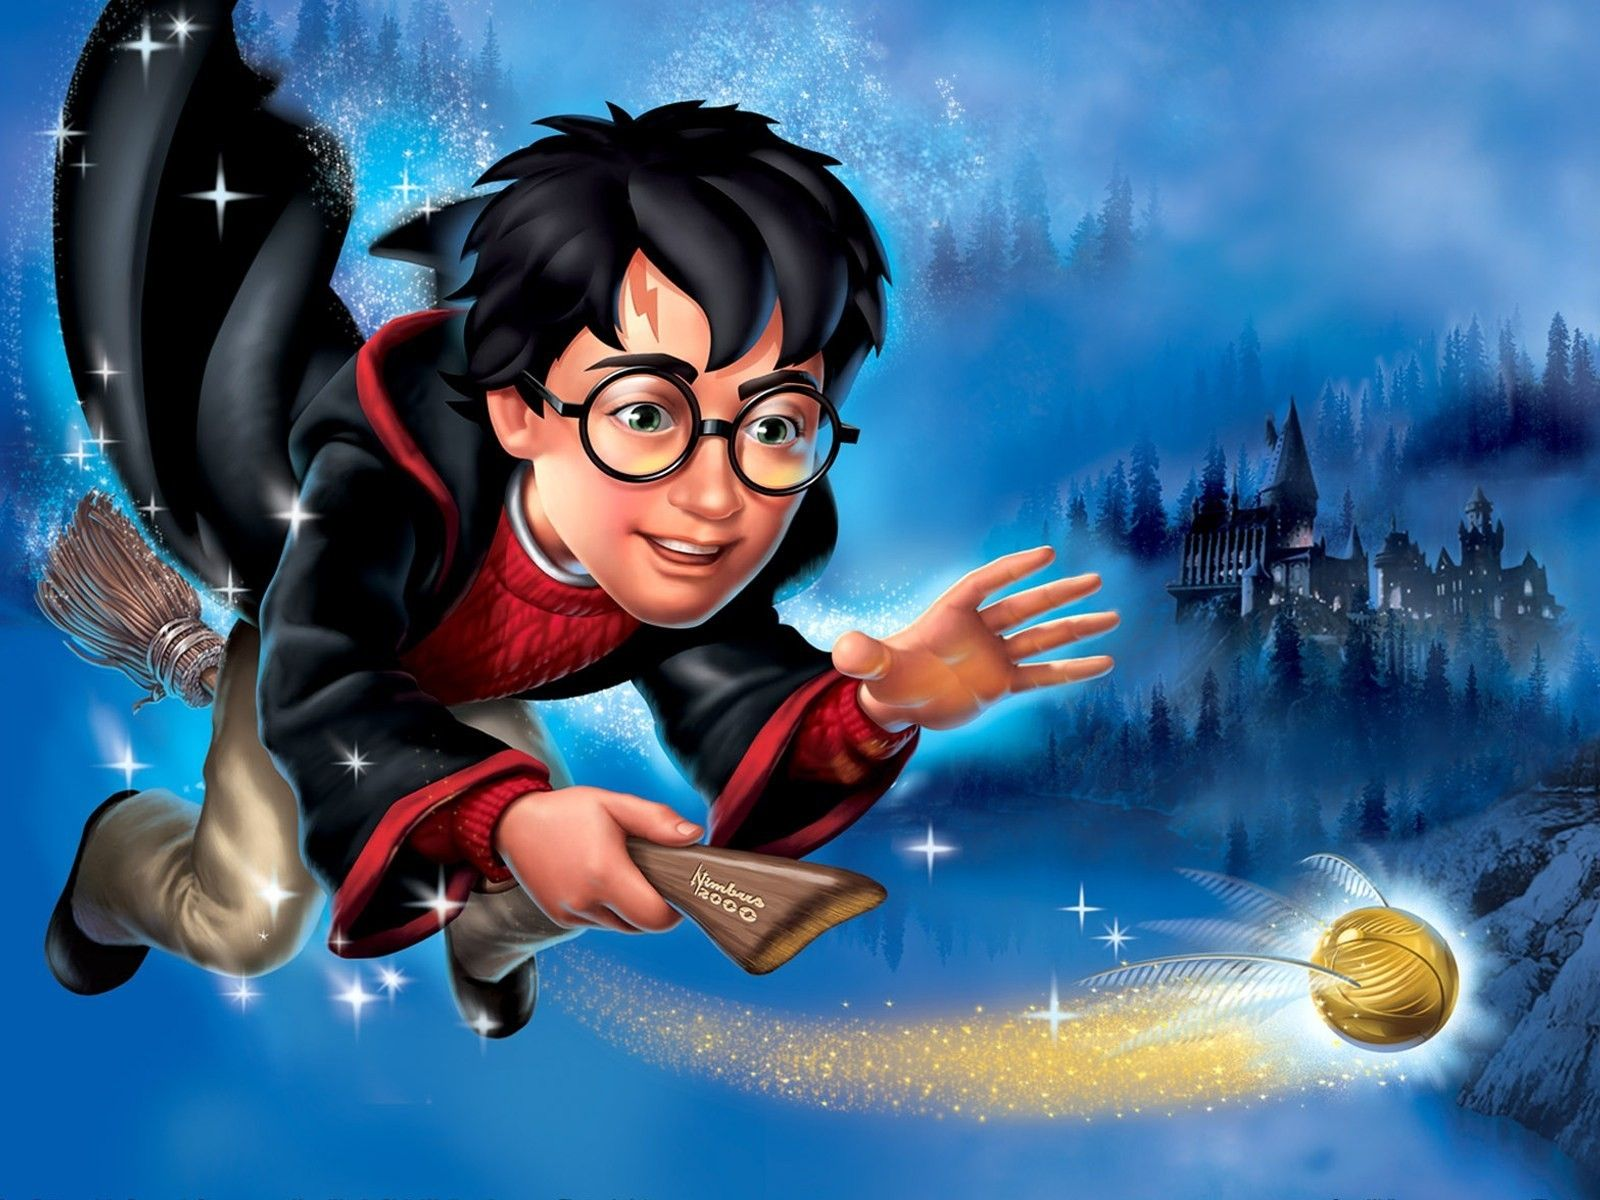 Free Moving Wallpaper Free Download Animated Desktop Wallpaper For Windows Xp Harry Potter Cartoon Harry Potter Free Harry Potter Wallpaper